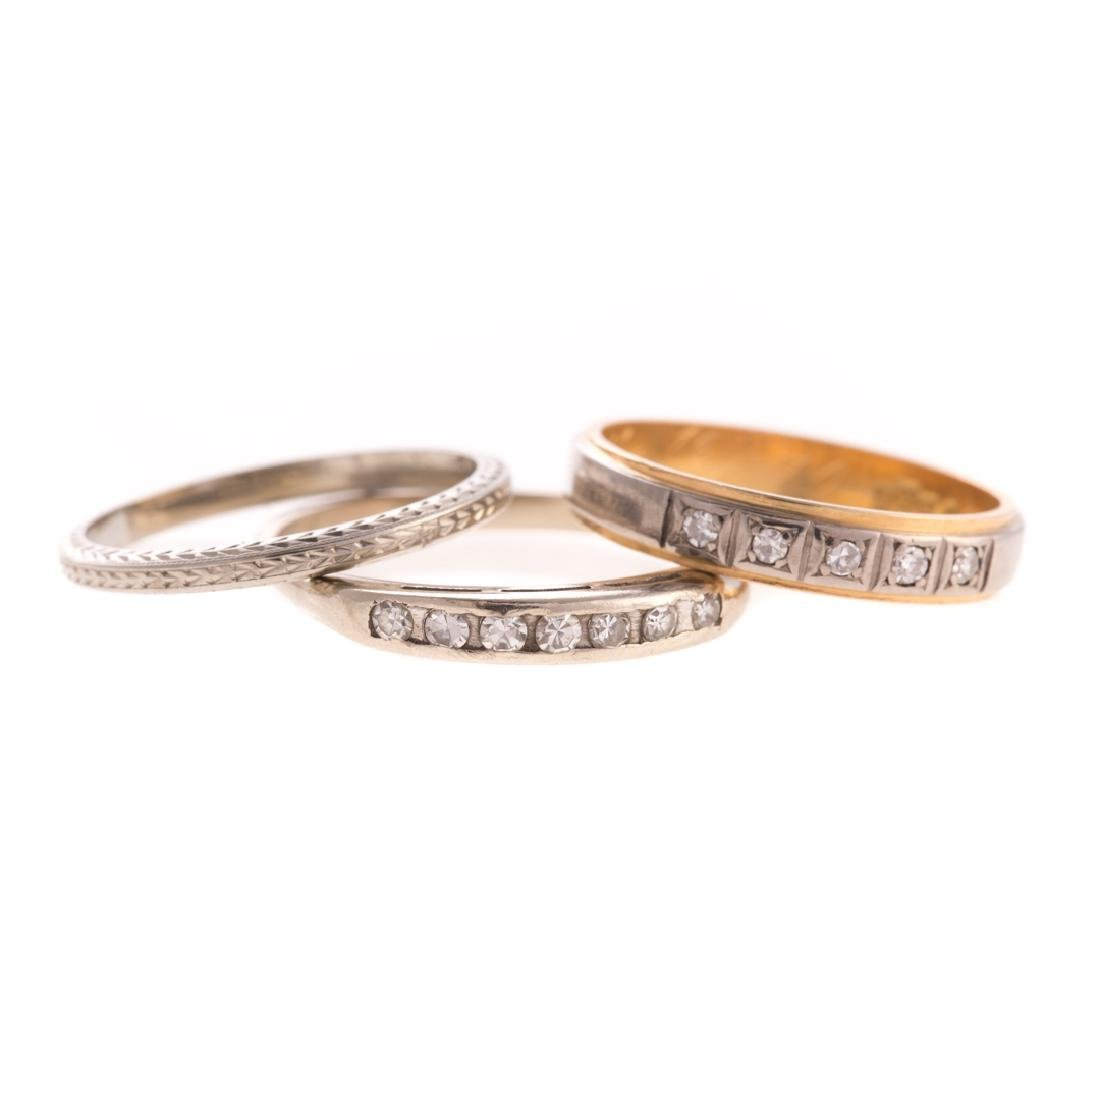 A Trio of Lady's Wedding Bands